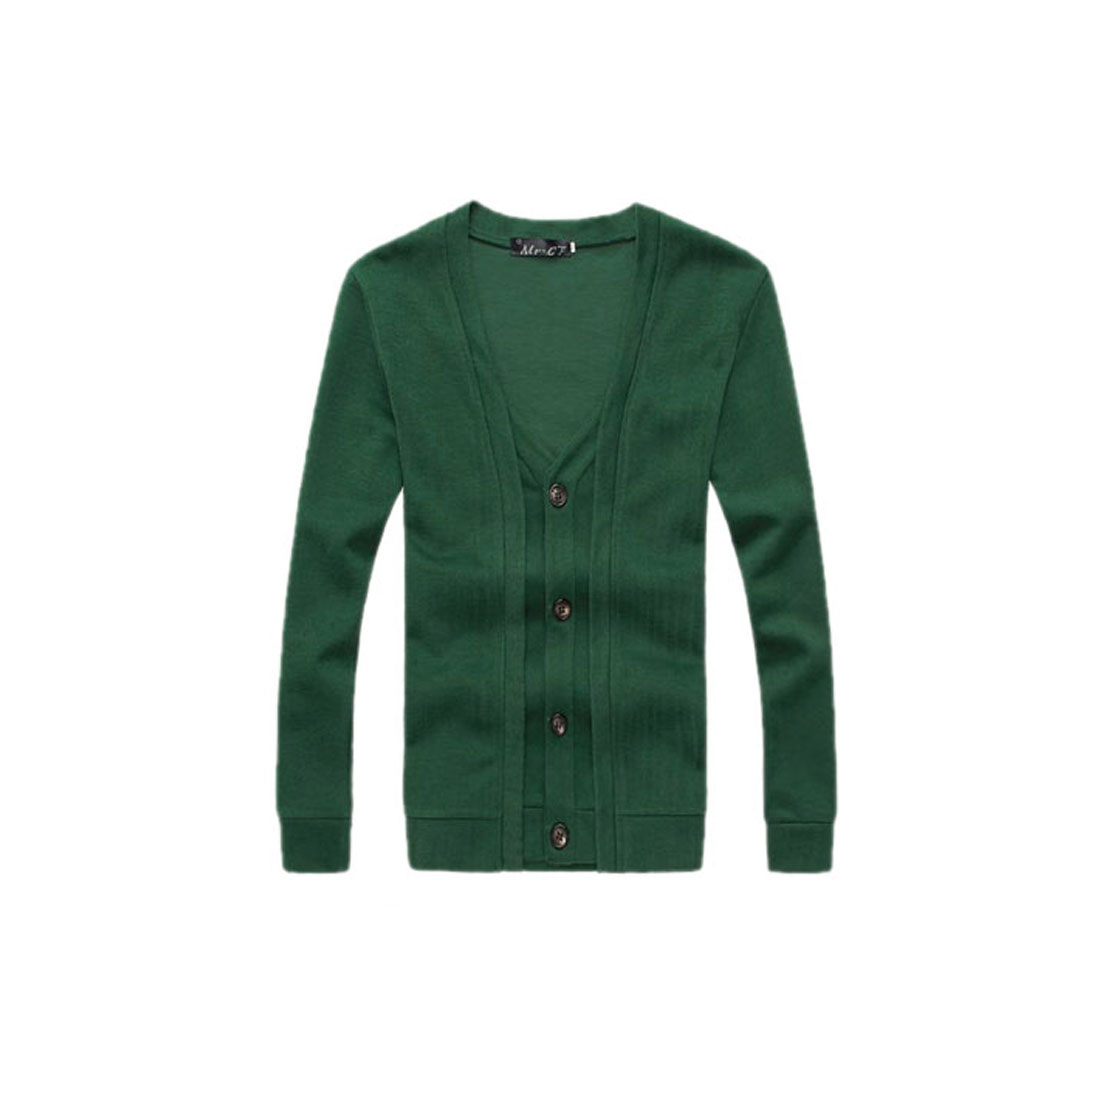 Men NEW Design Long Sleeve V Neck Button Down Layered Green Cardigan M